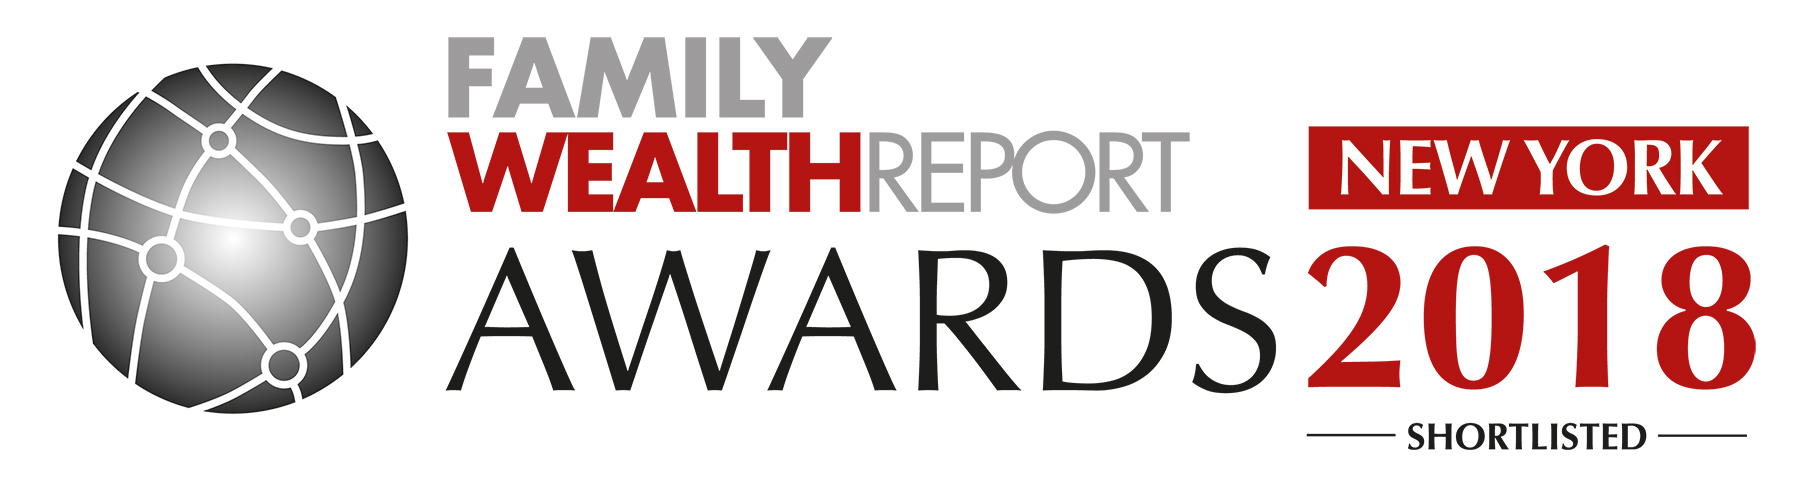 New York 2018 Family Wealth Report Awards Logo